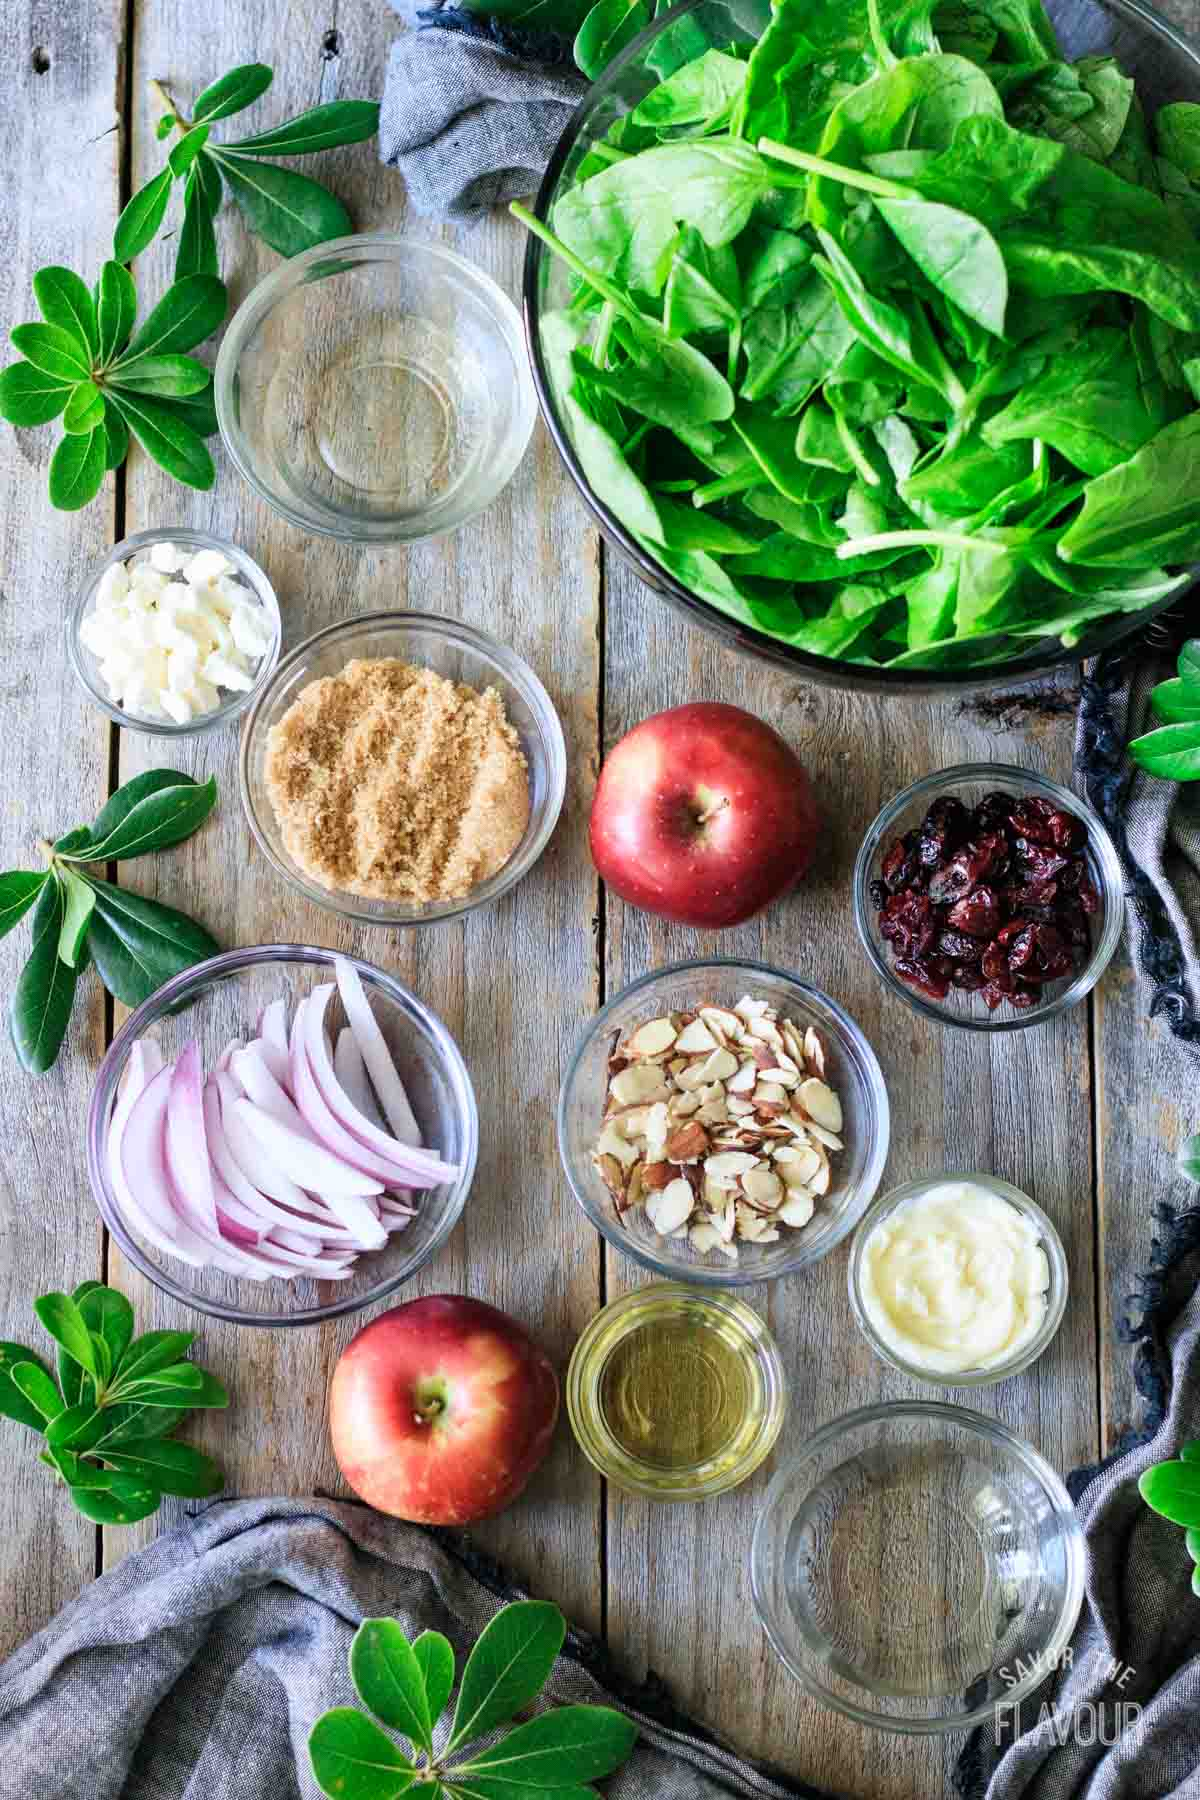 ingredients for spinach apple salad